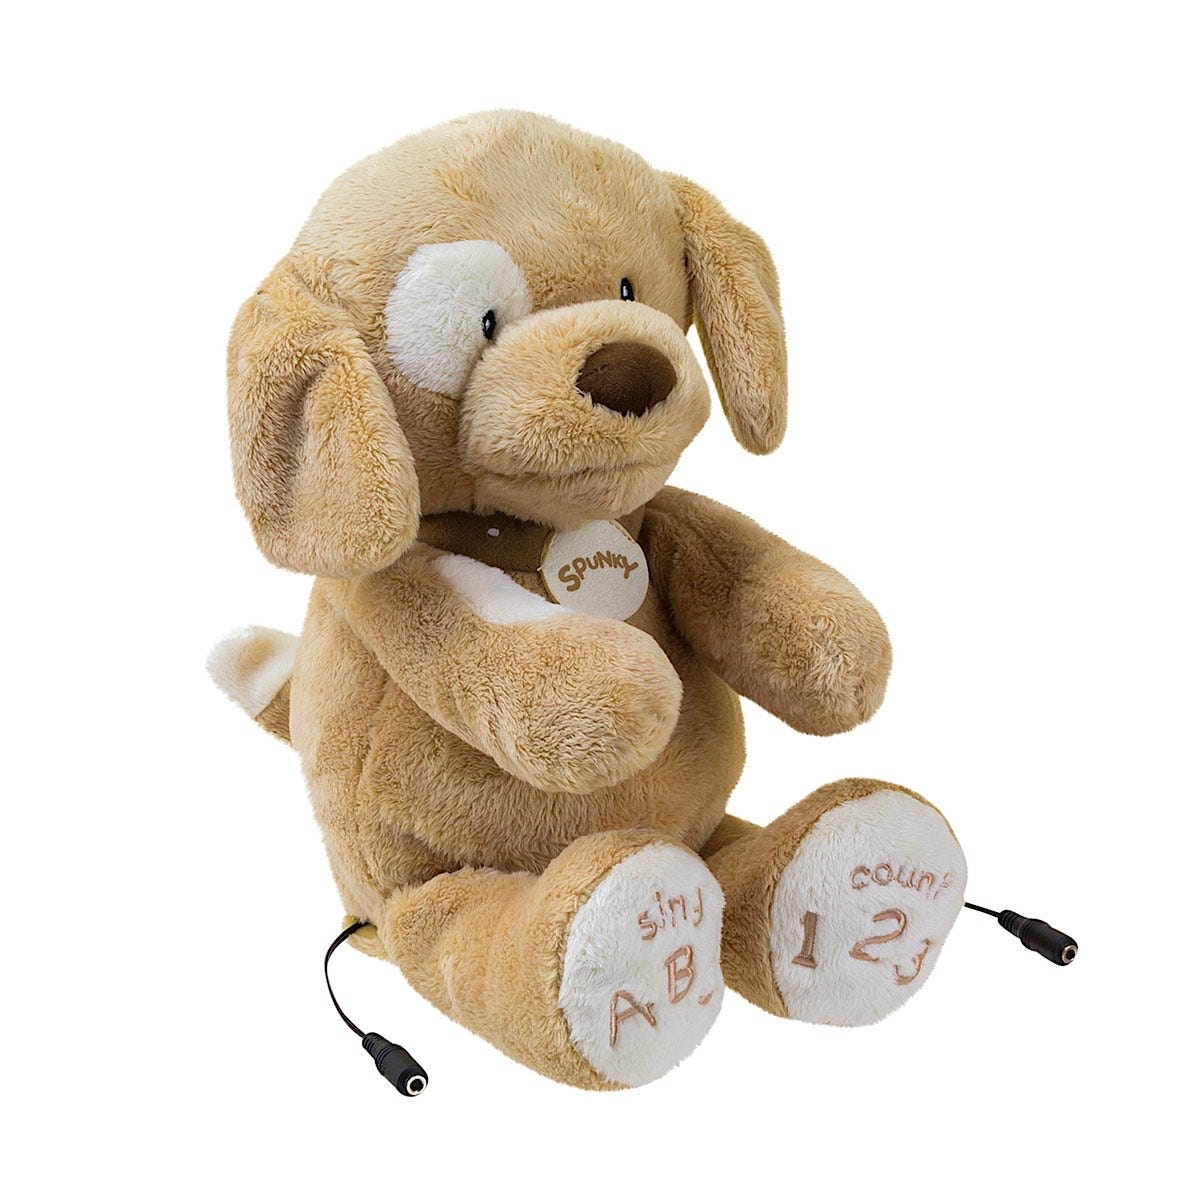 ABC 123 Spunky Dog Switch Adapted Toy